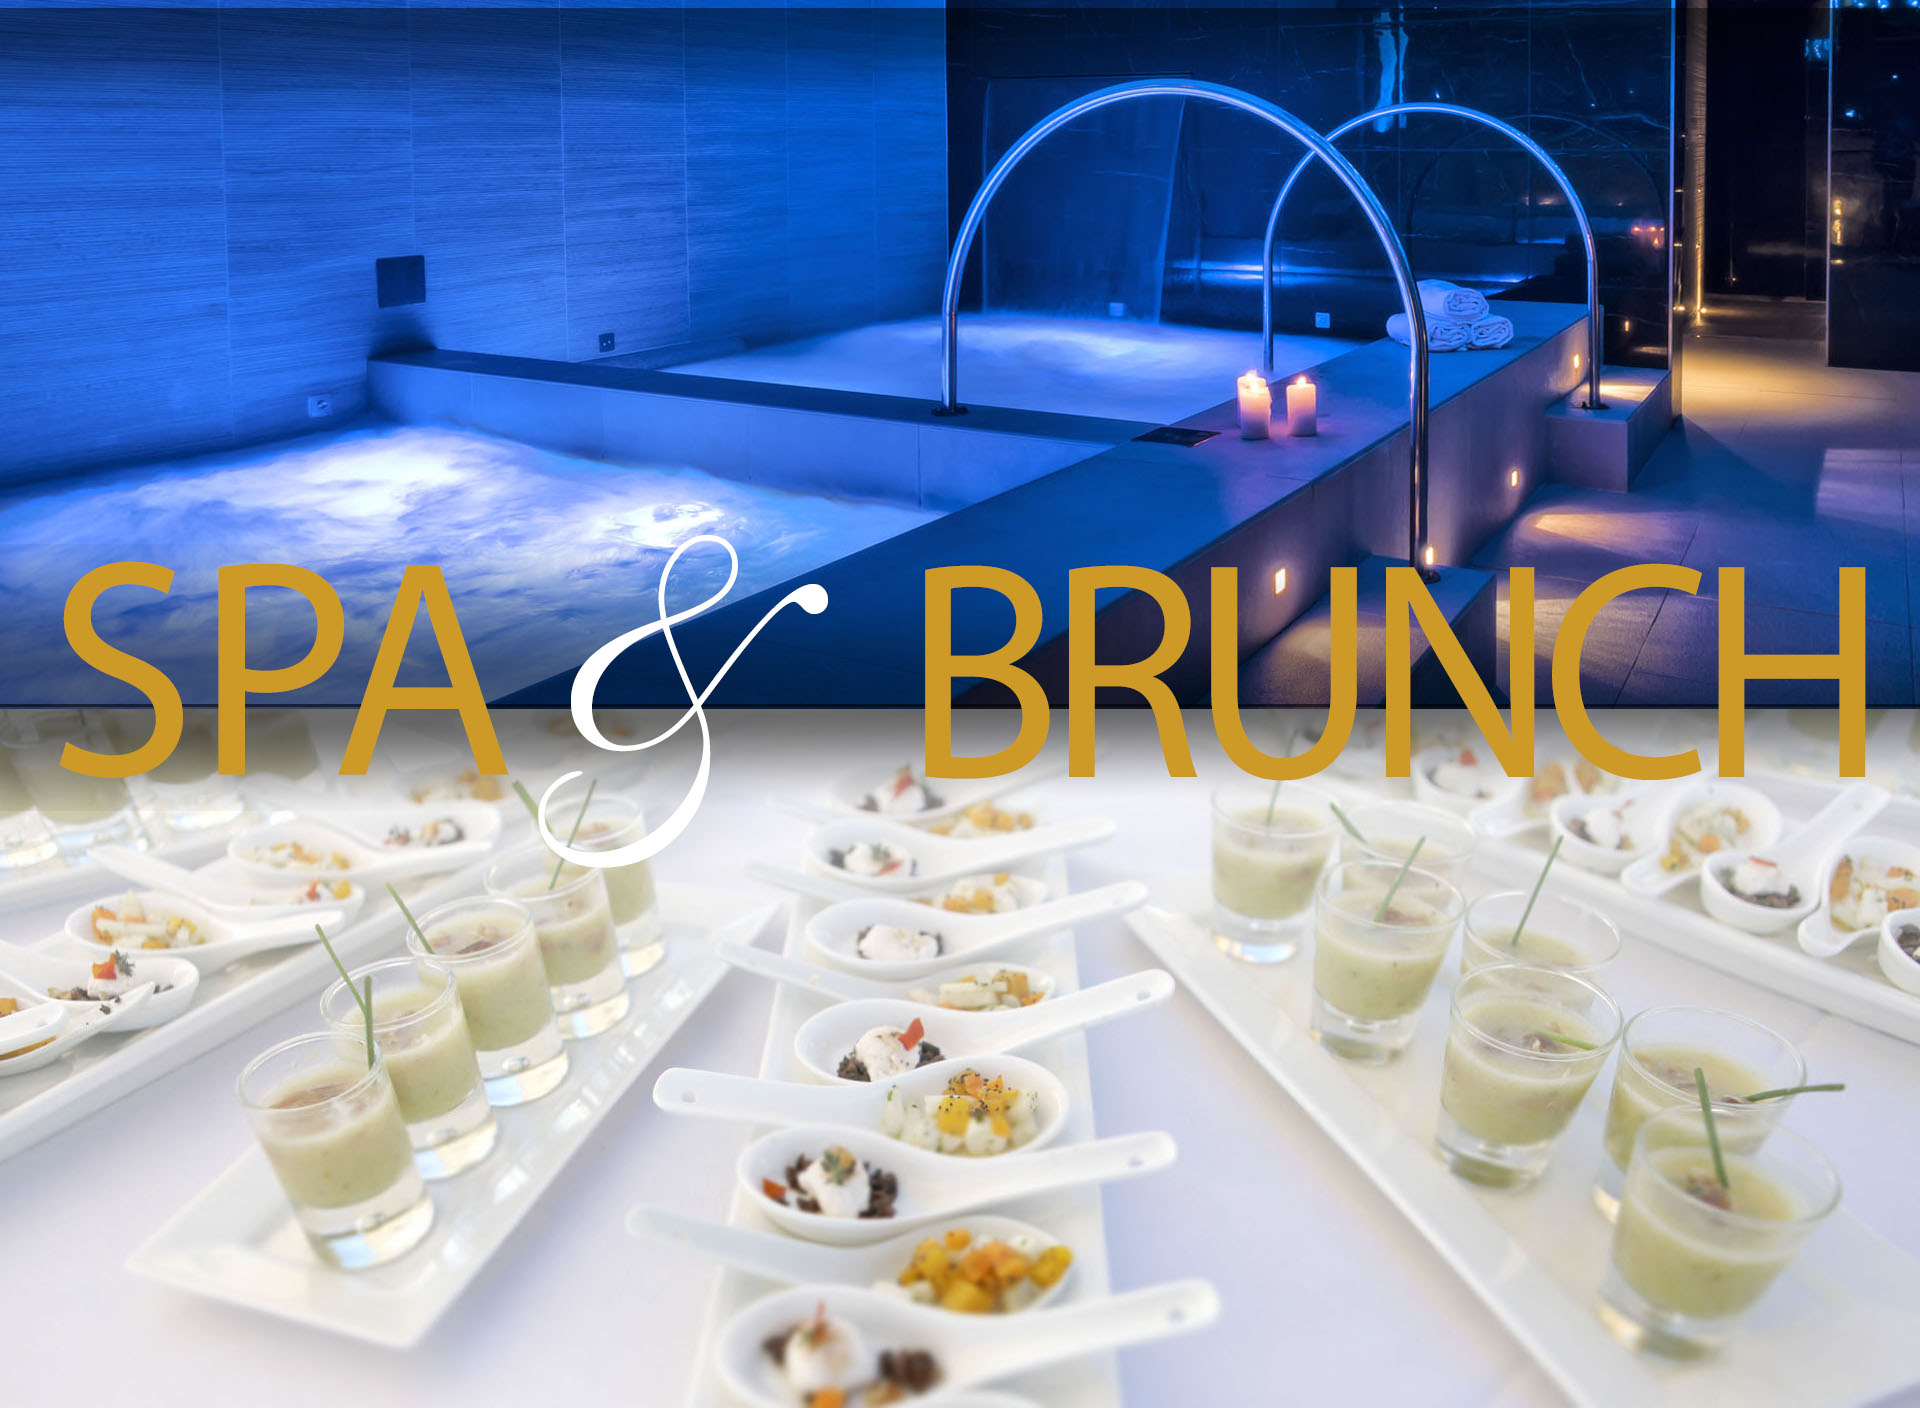 Spa e Brunch